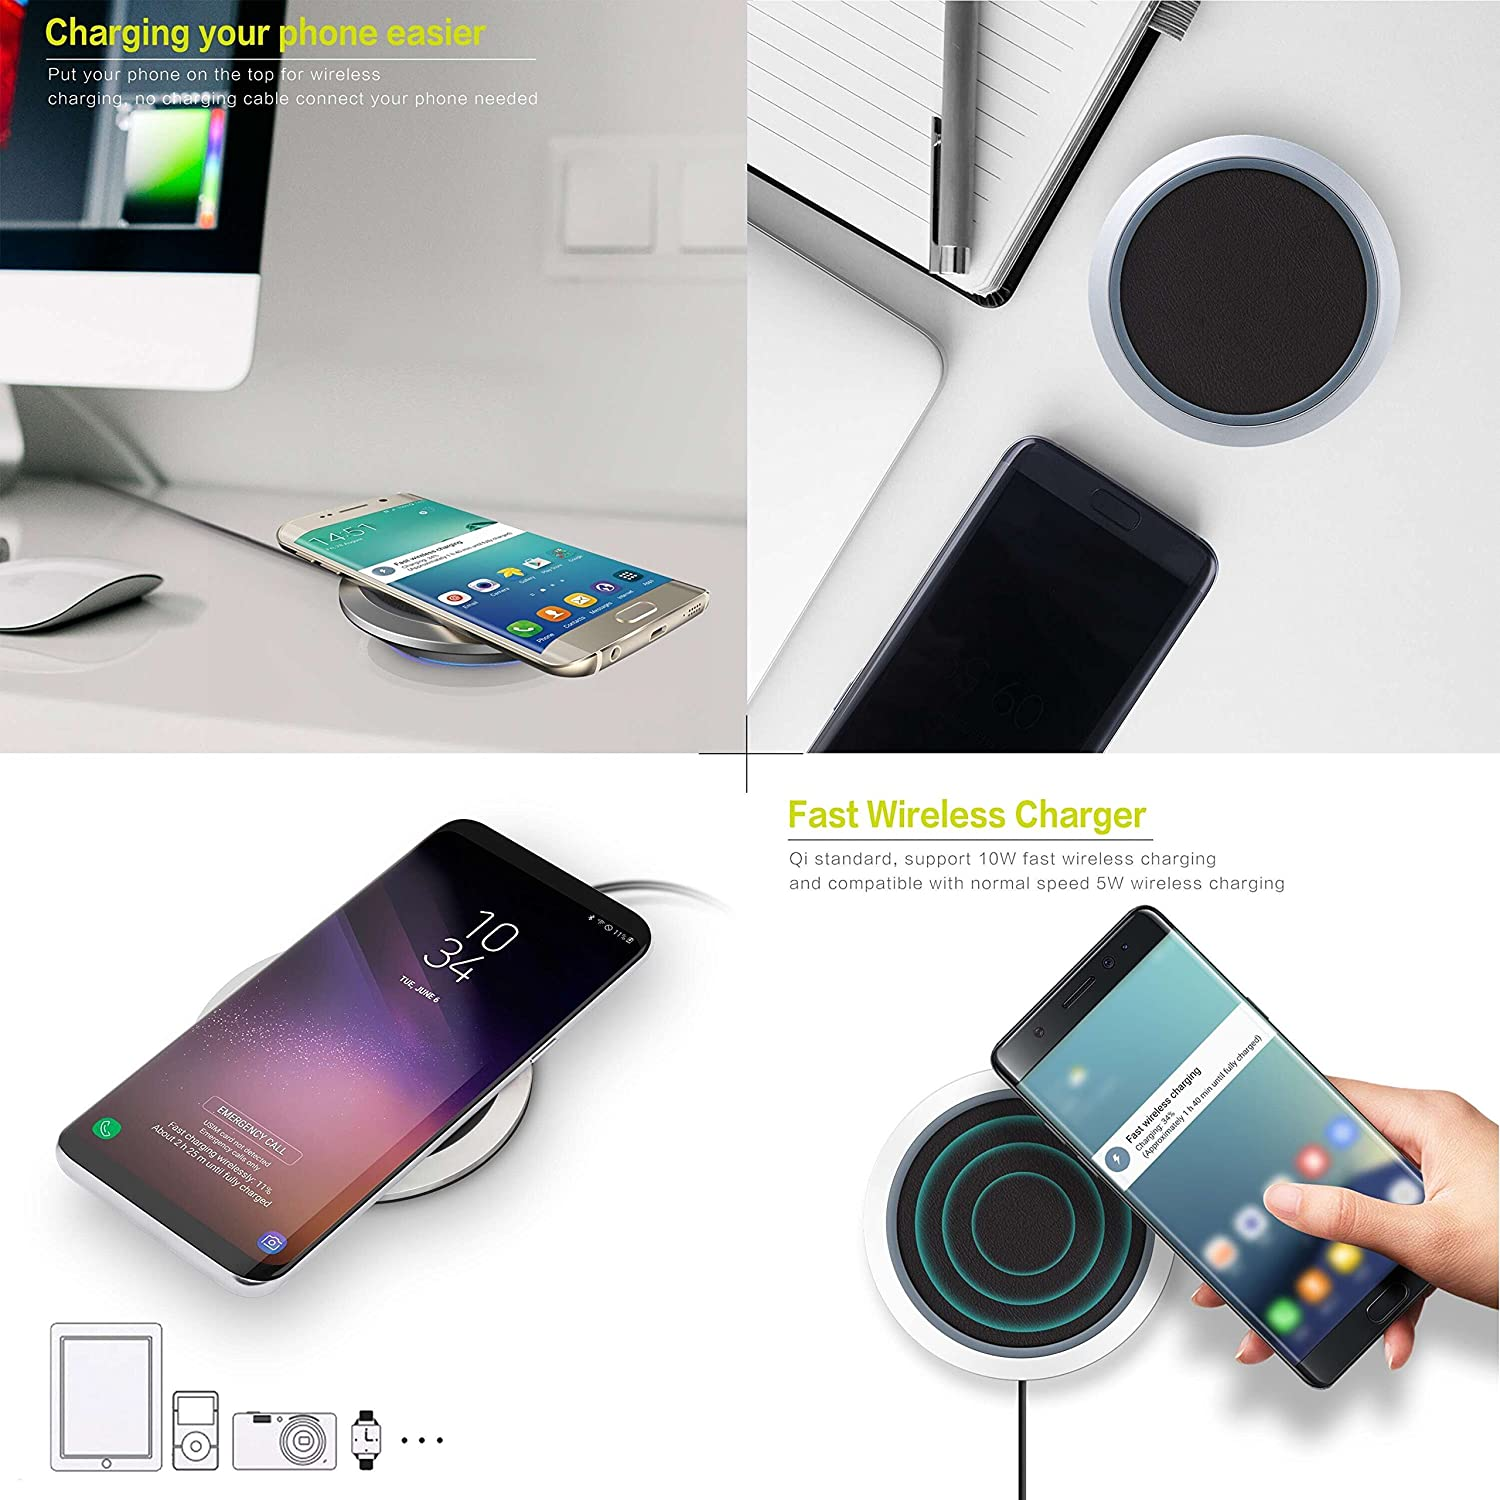 No Adapter Wireless Charger Kcpella Standard QI Wireless Charging Pad for iPhone X//8//8 Plus Fast Wireless Charge for Samsung Galaxy S9//S9+//S8//S8+//S7//Note 8 and All Qi-Enabled Phones